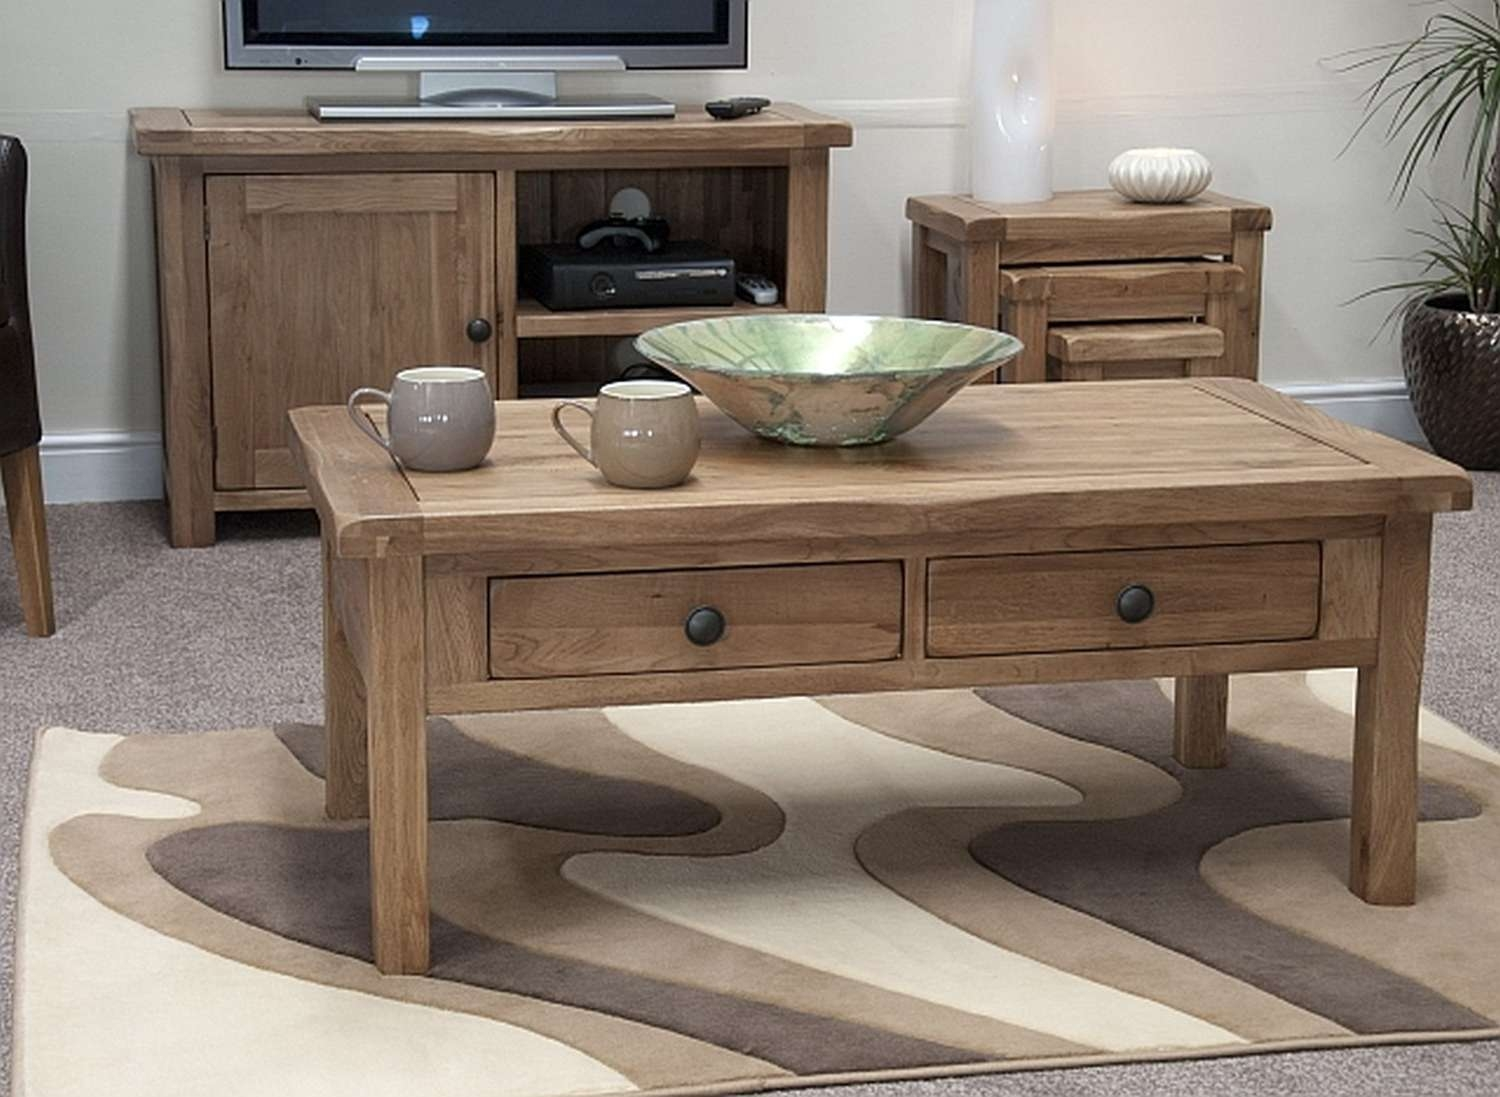 Original Coffee Table 20 Inspirations Of Rustic Oak Coffee Table With Drawers